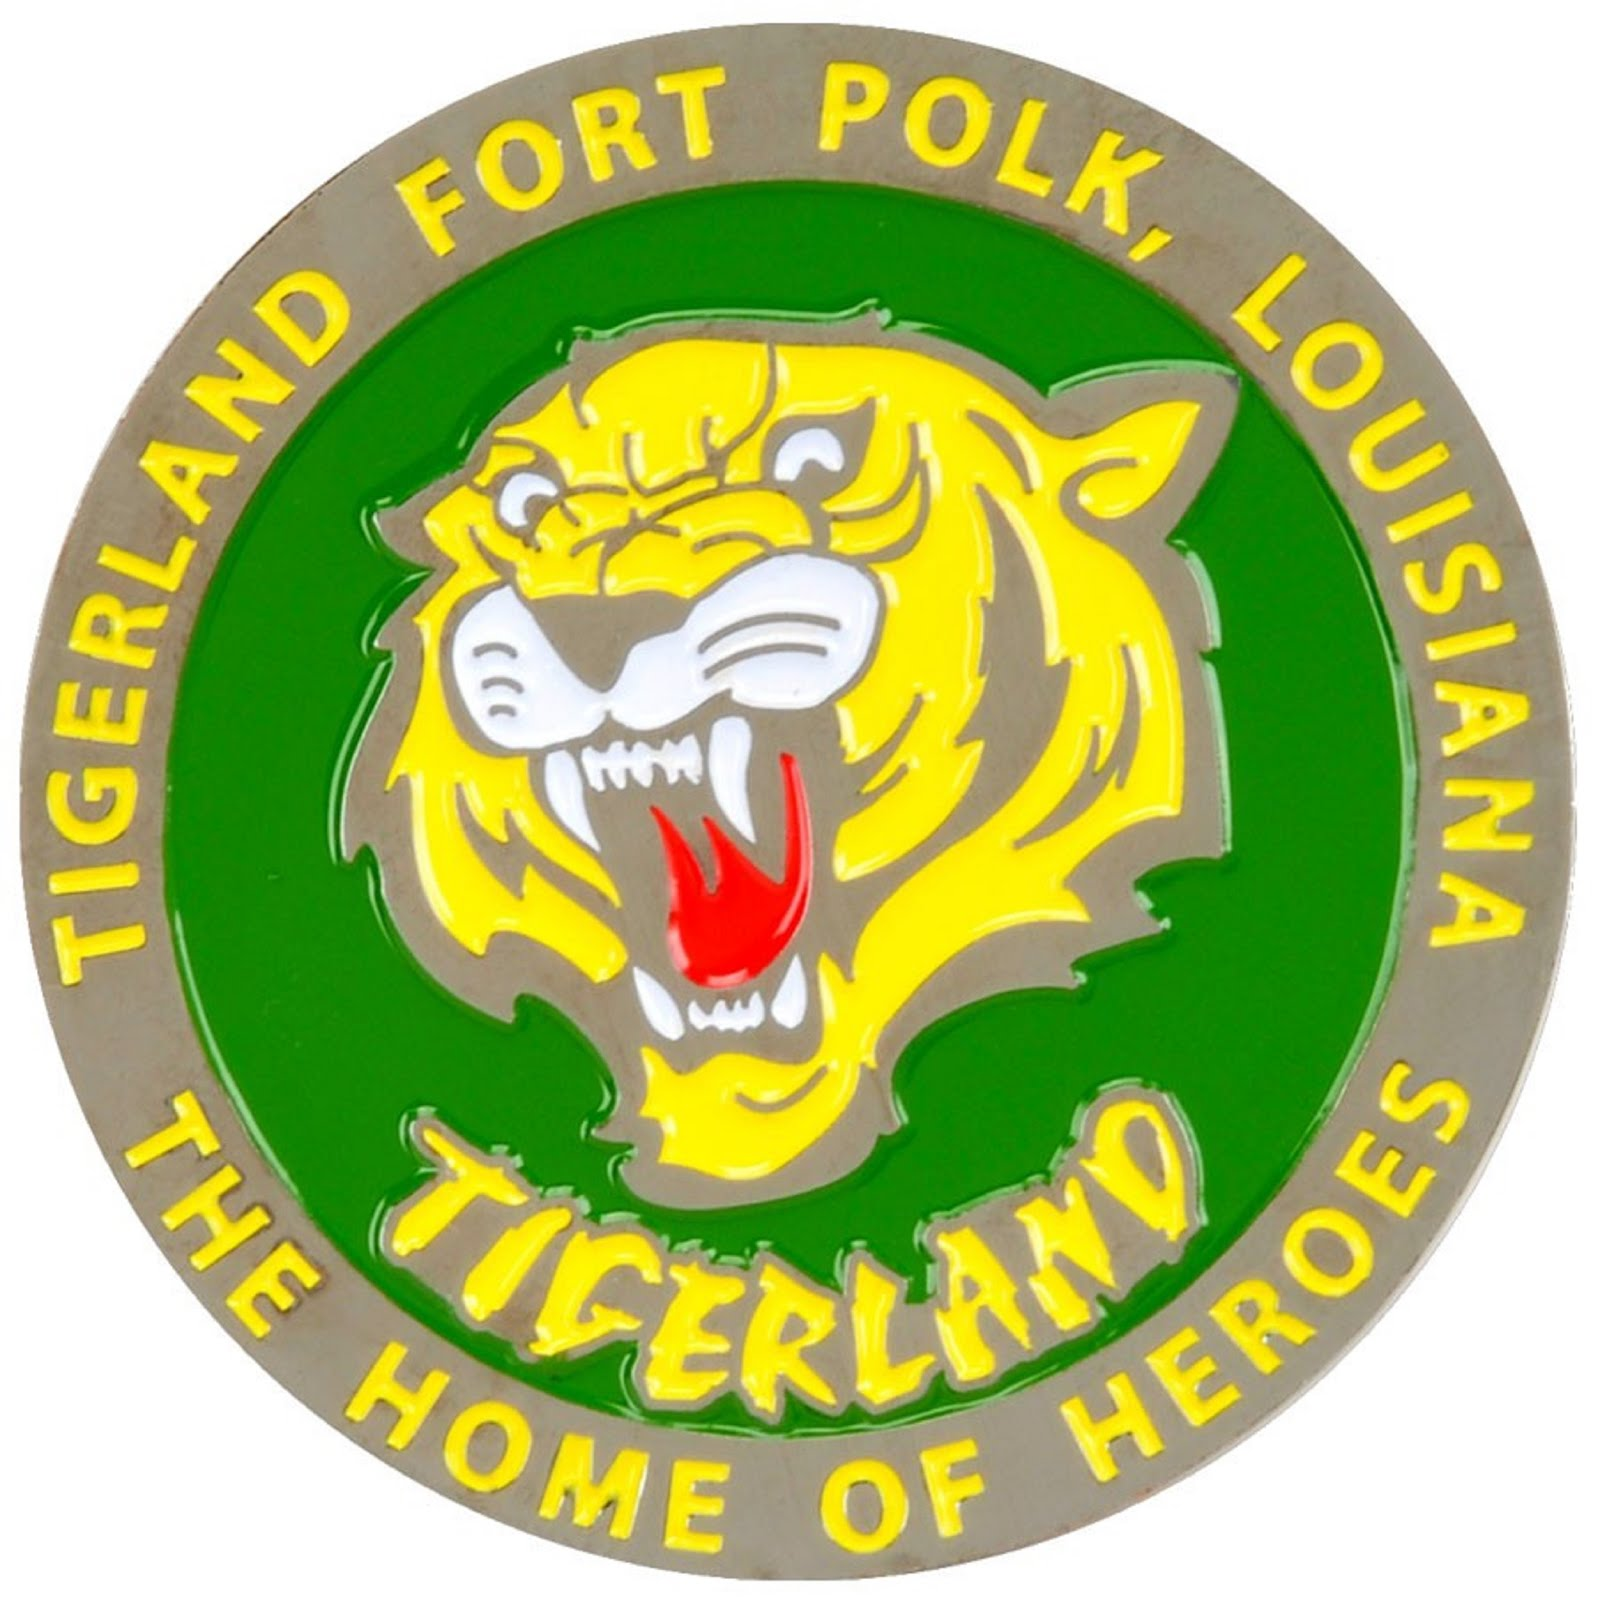 "FORT POLK ""TIGERLAND"" LOUISIANA - THE HOME OF HEROES"